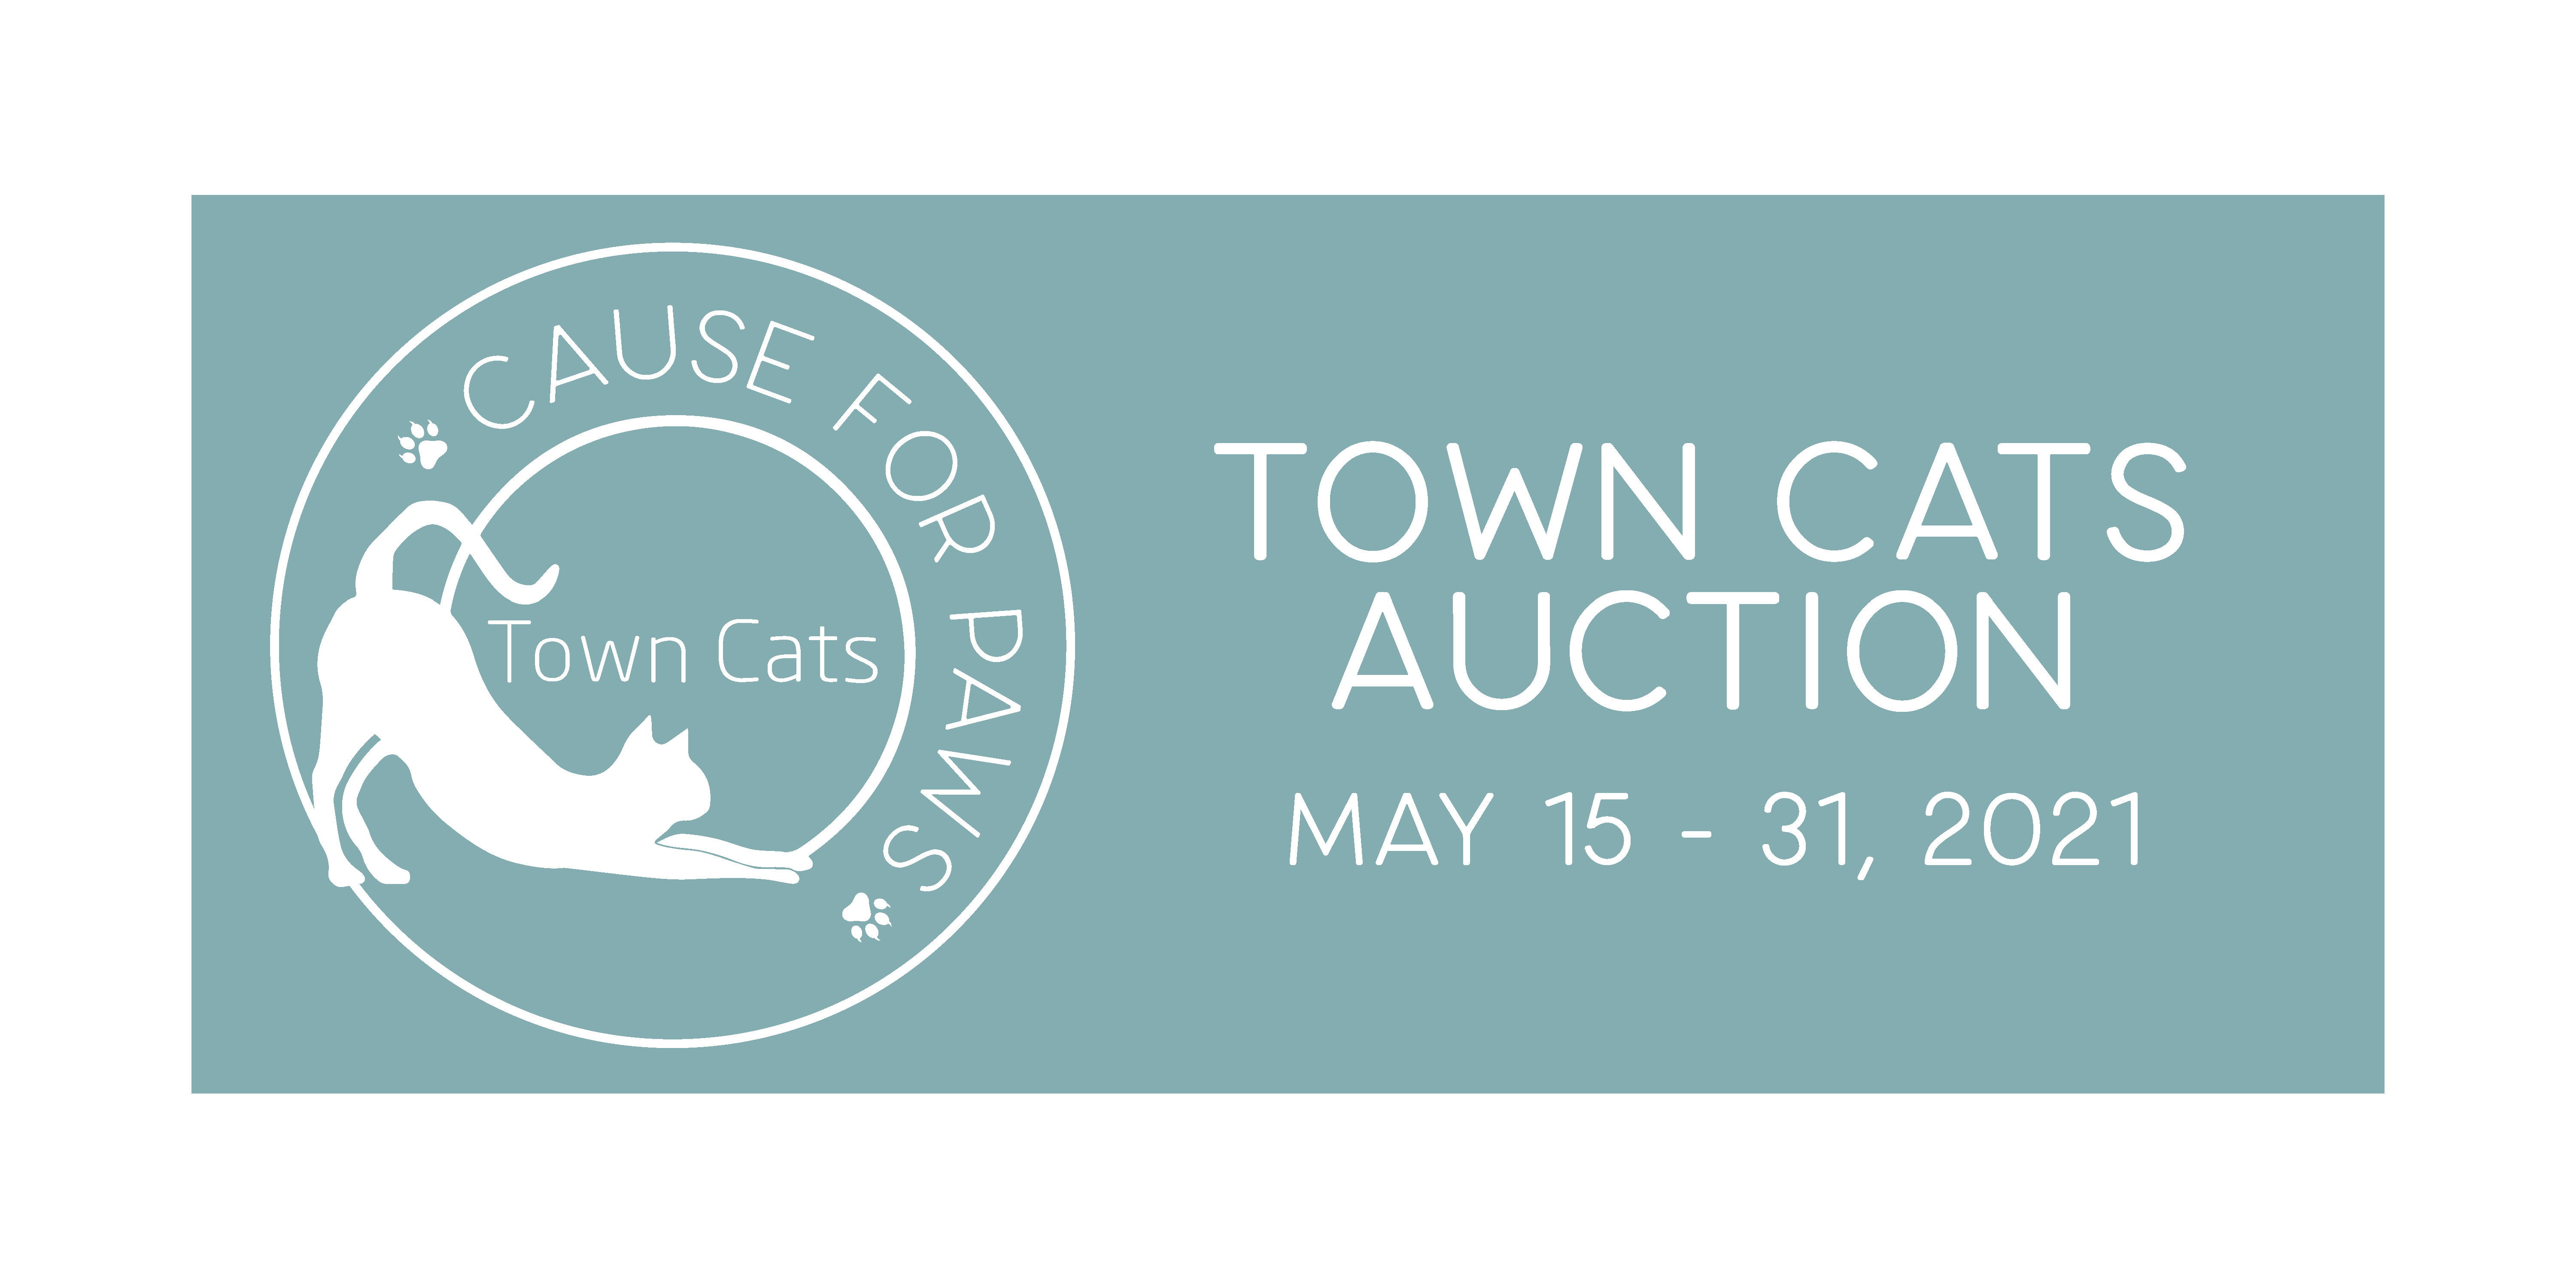 Cause for Paws Auction